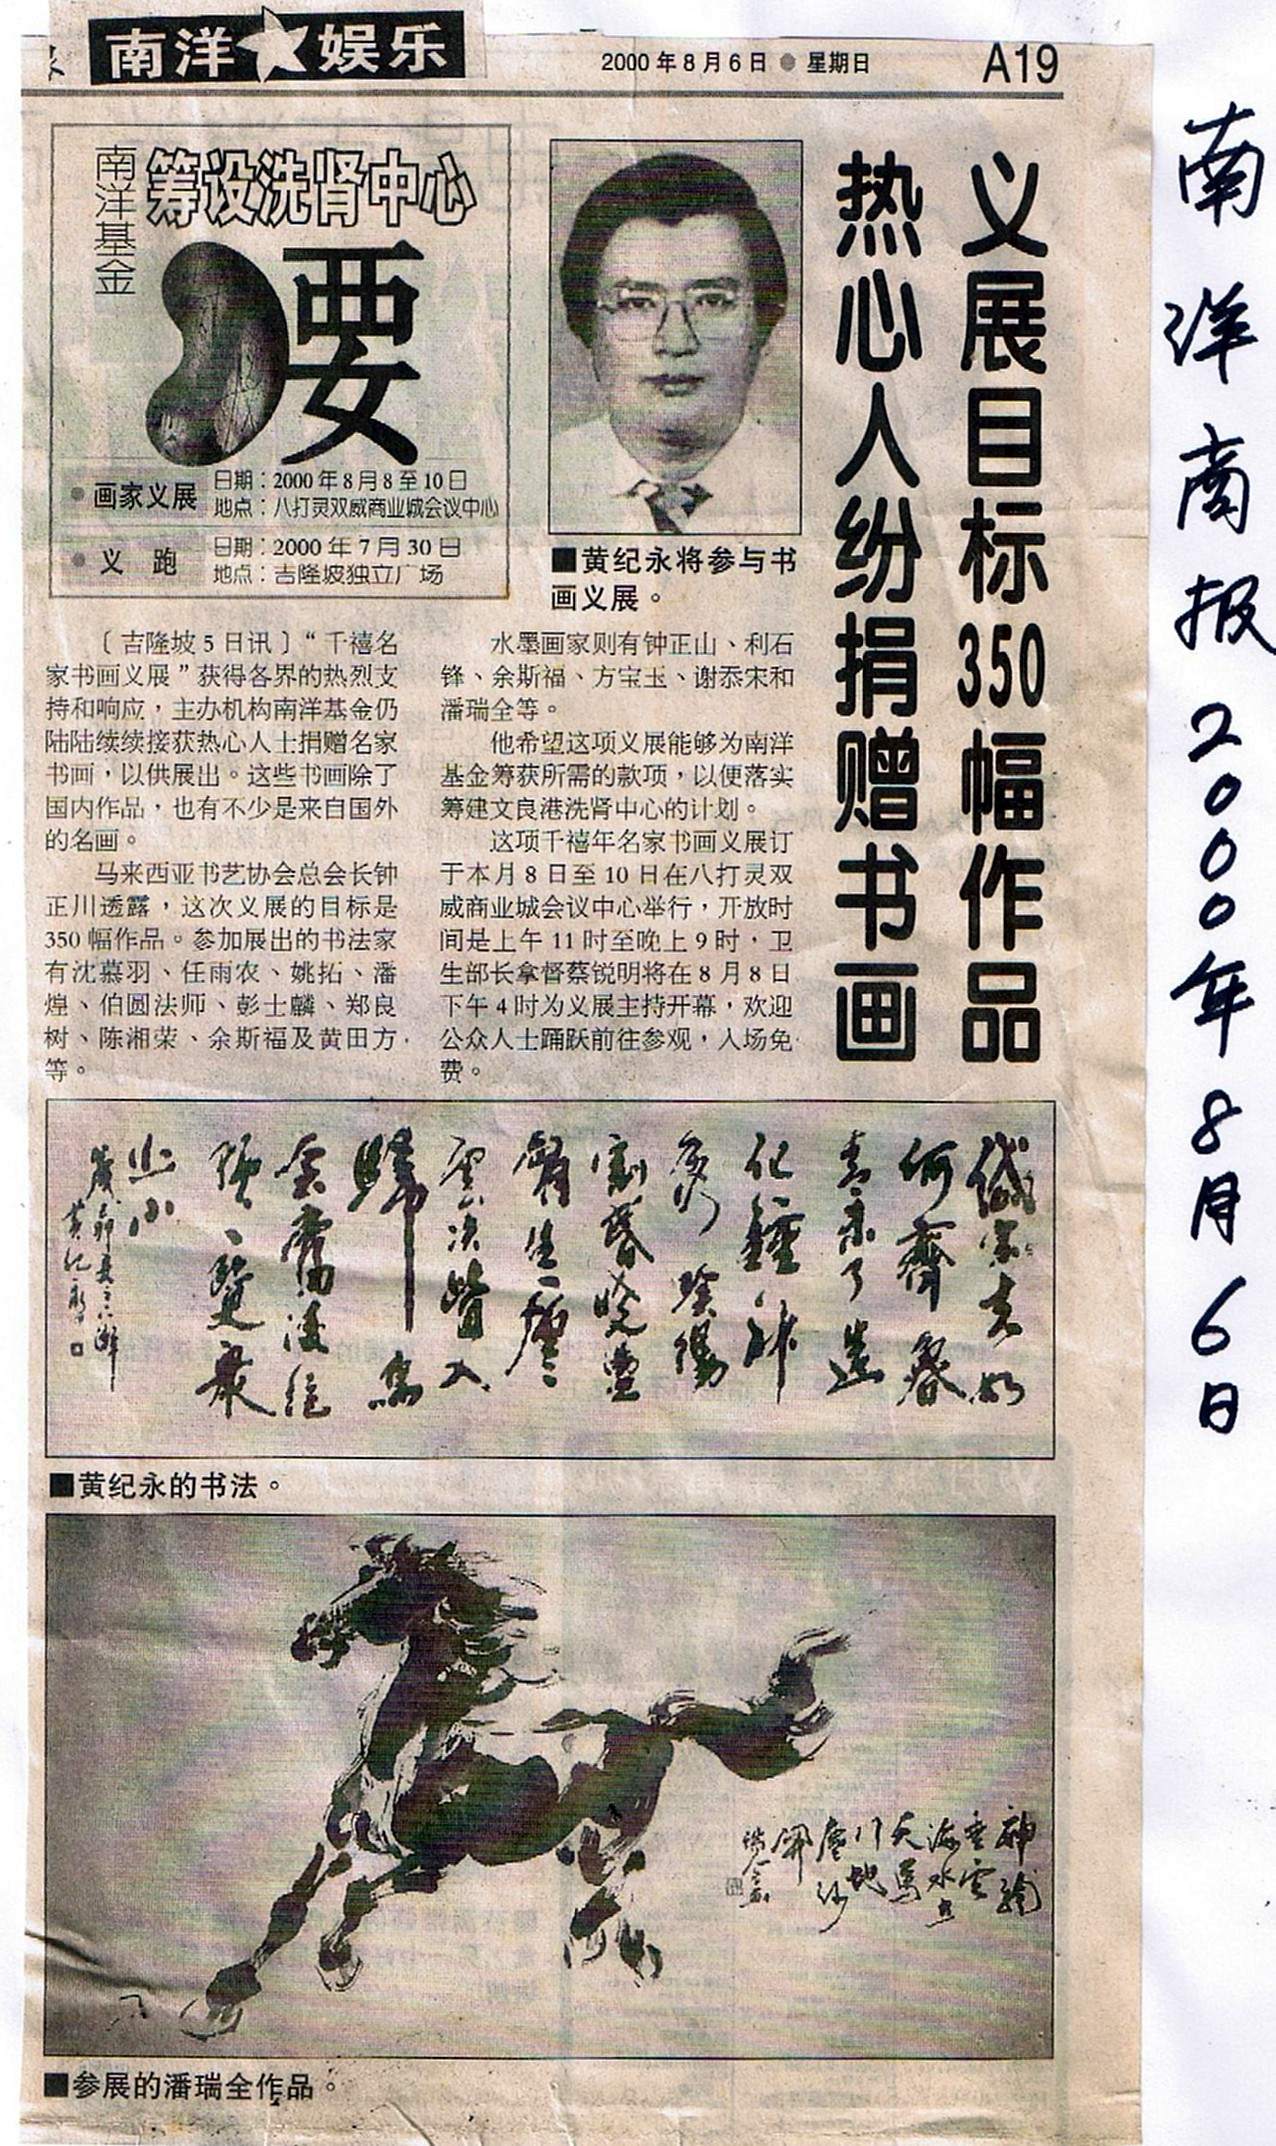 My Chinese horse painting was sold at a high price in a charity art show beneficiating the Kidney welfare centre in 2000.